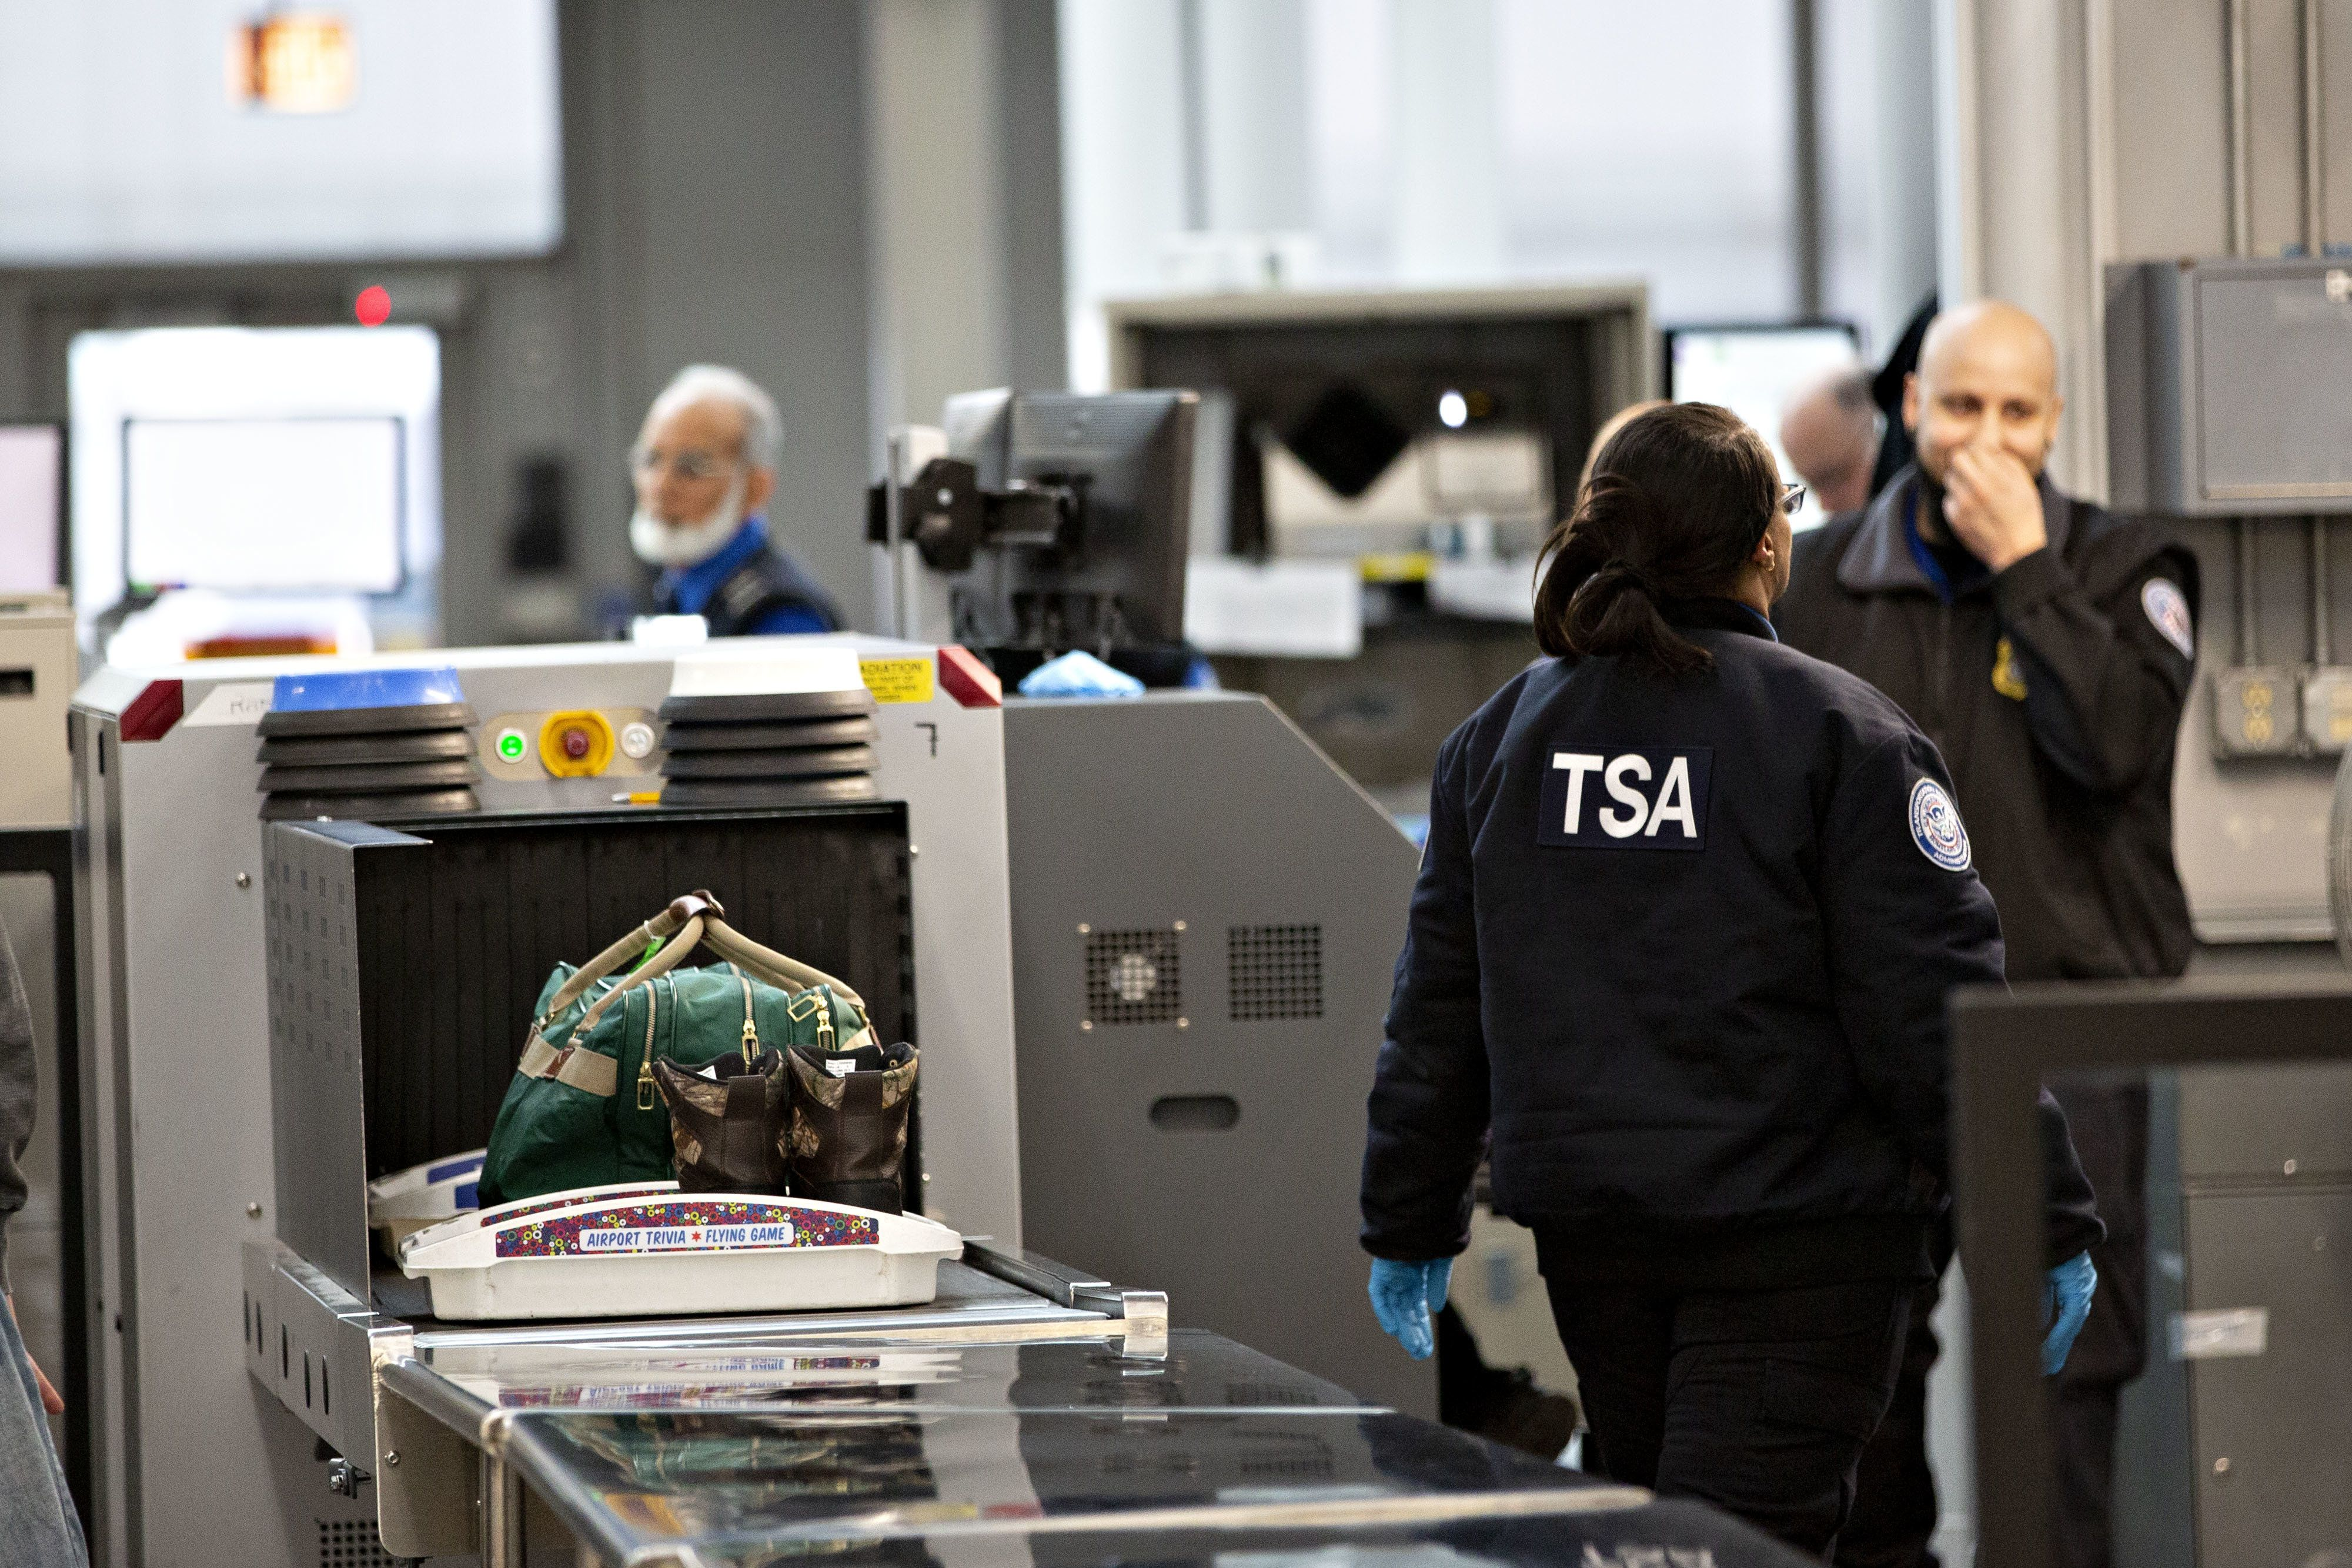 Transportation Security Administration (TSA) agents work at a check-point inside O'Hare International Airport (ORD) in Chicago, Illinois, U.S., on Tuesday, Jan. 8, 2019. With screeners already calling in sick in larger-than-normal numbers, U.S. airports are girding for disruptions next week if the partial government shutdown continues andTSA officers miss their first paycheck. Photographer: Daniel Acker/Bloomberg via Getty Images